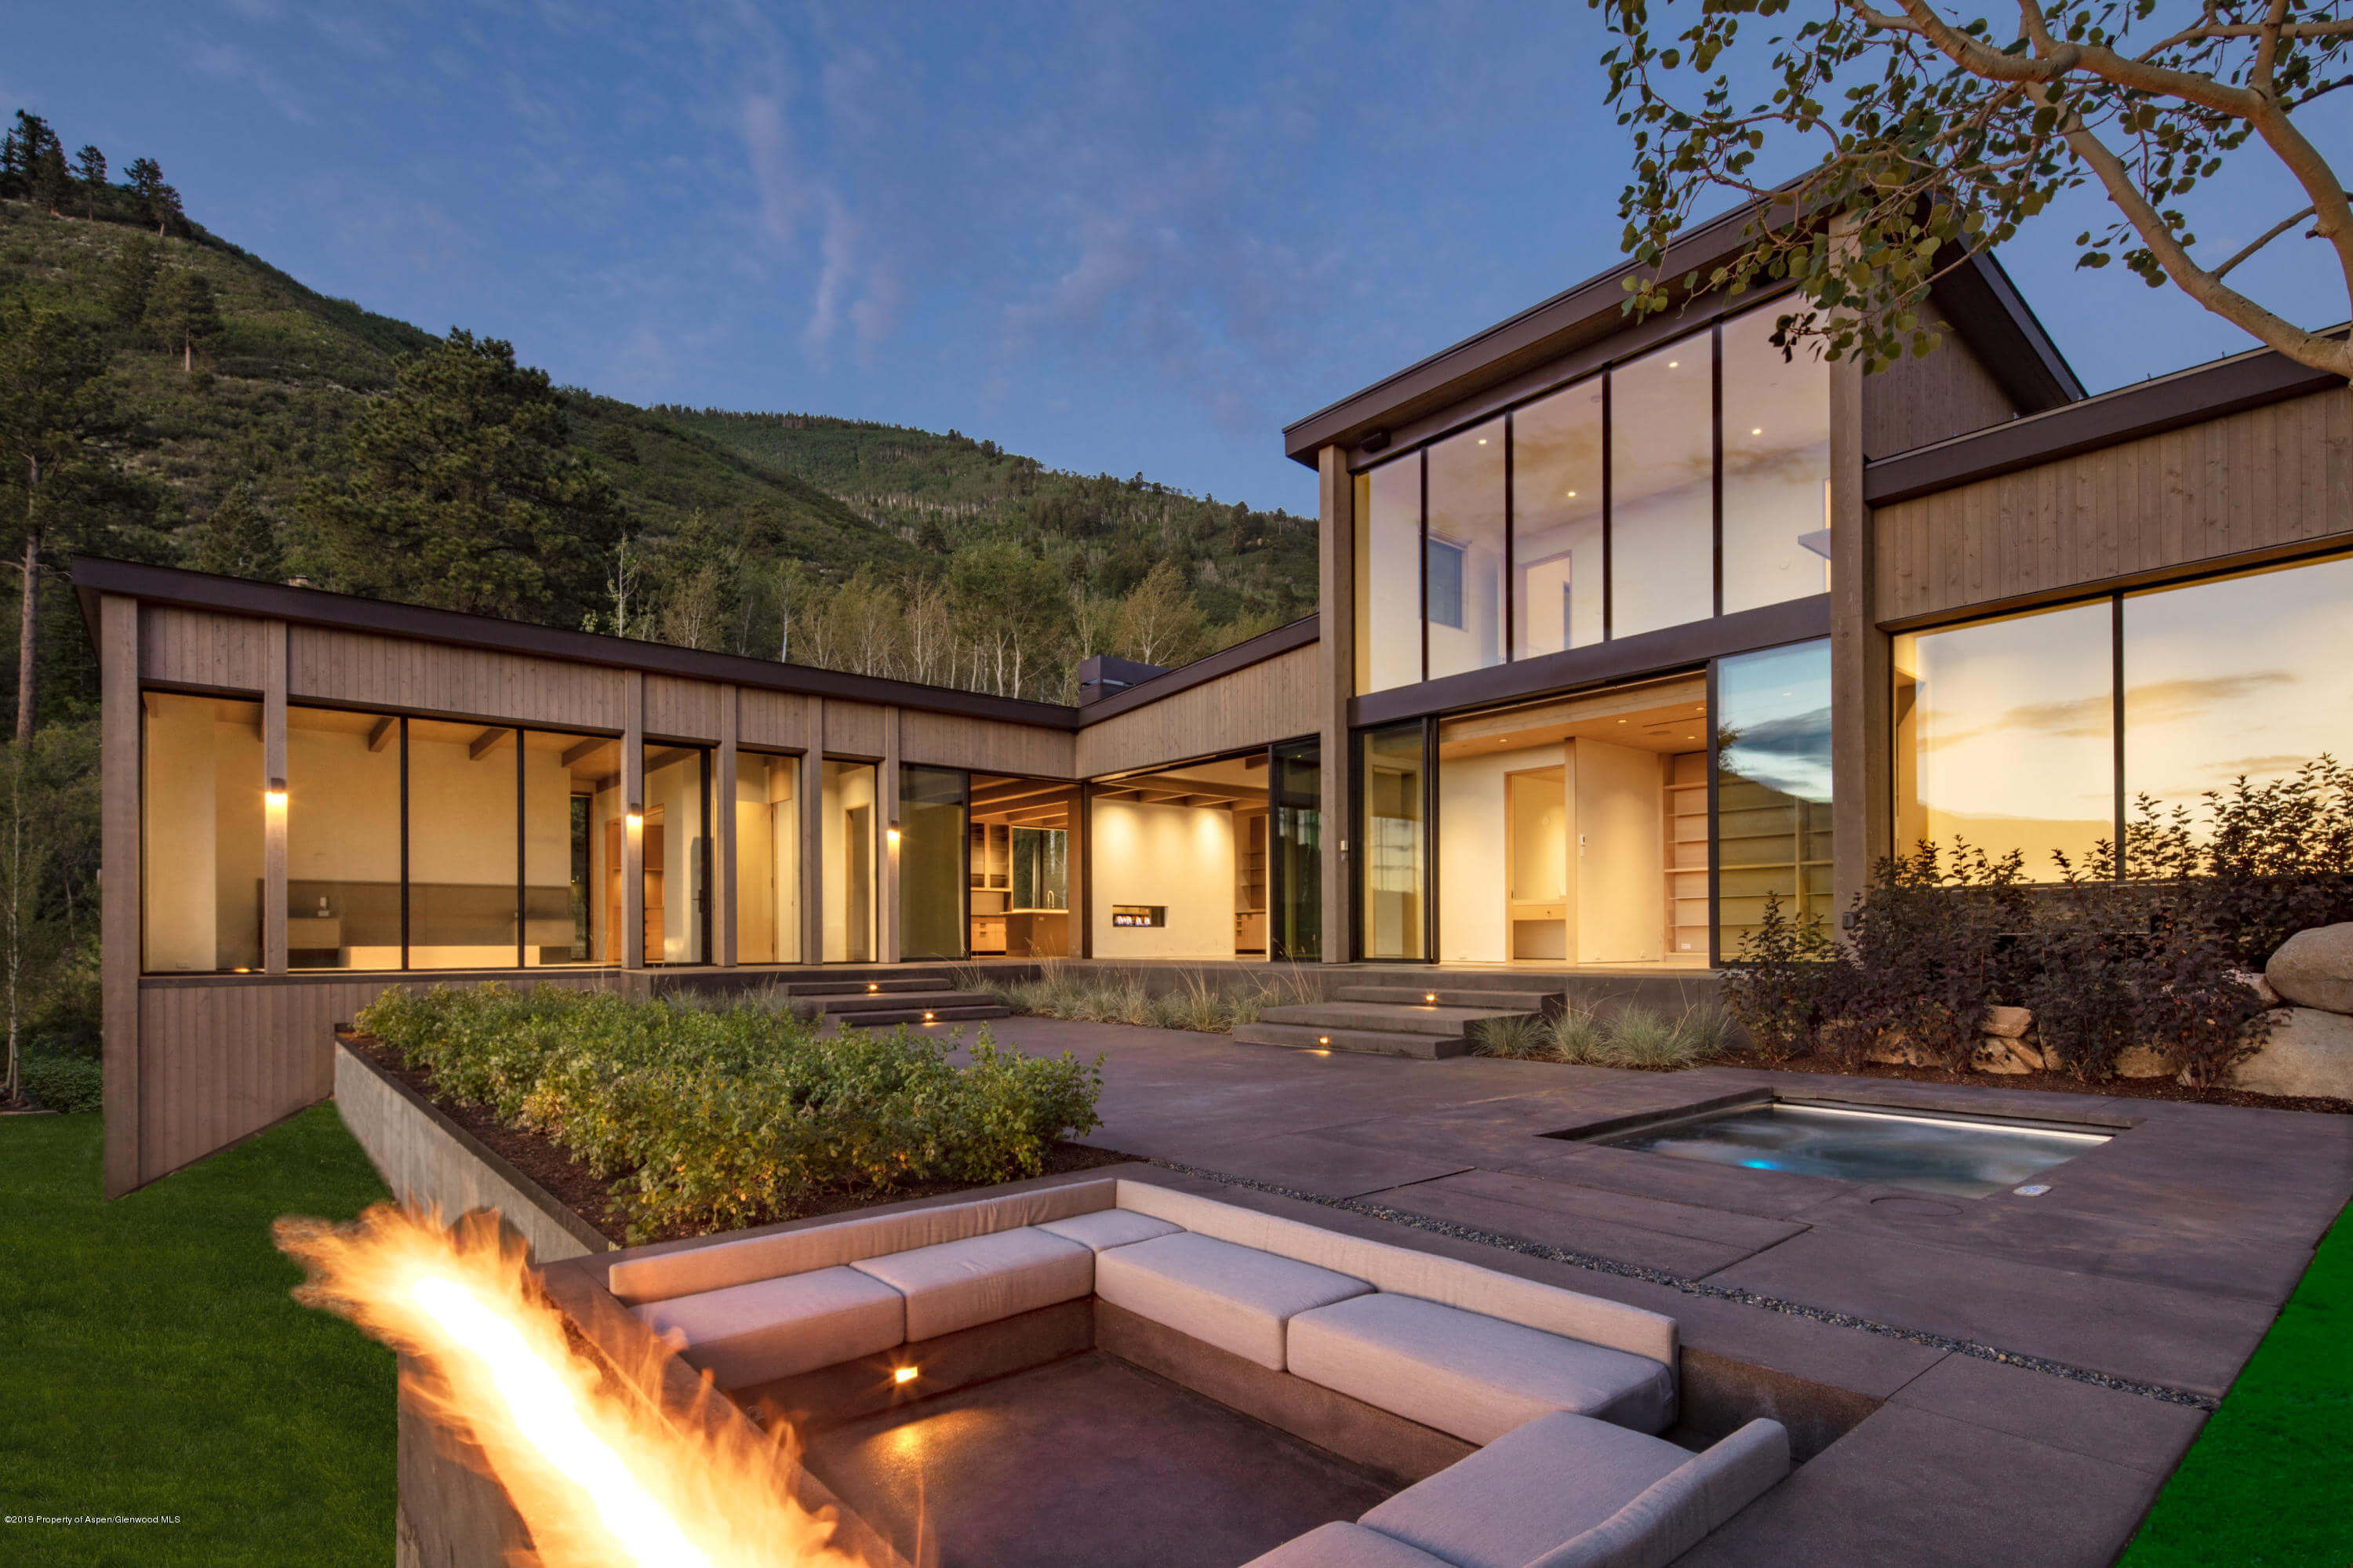 2019 Built East Aspen Contemporary Home at 287 McSkimming Rd Sold $14.4MM/$2,271 SF Unfurnished Image